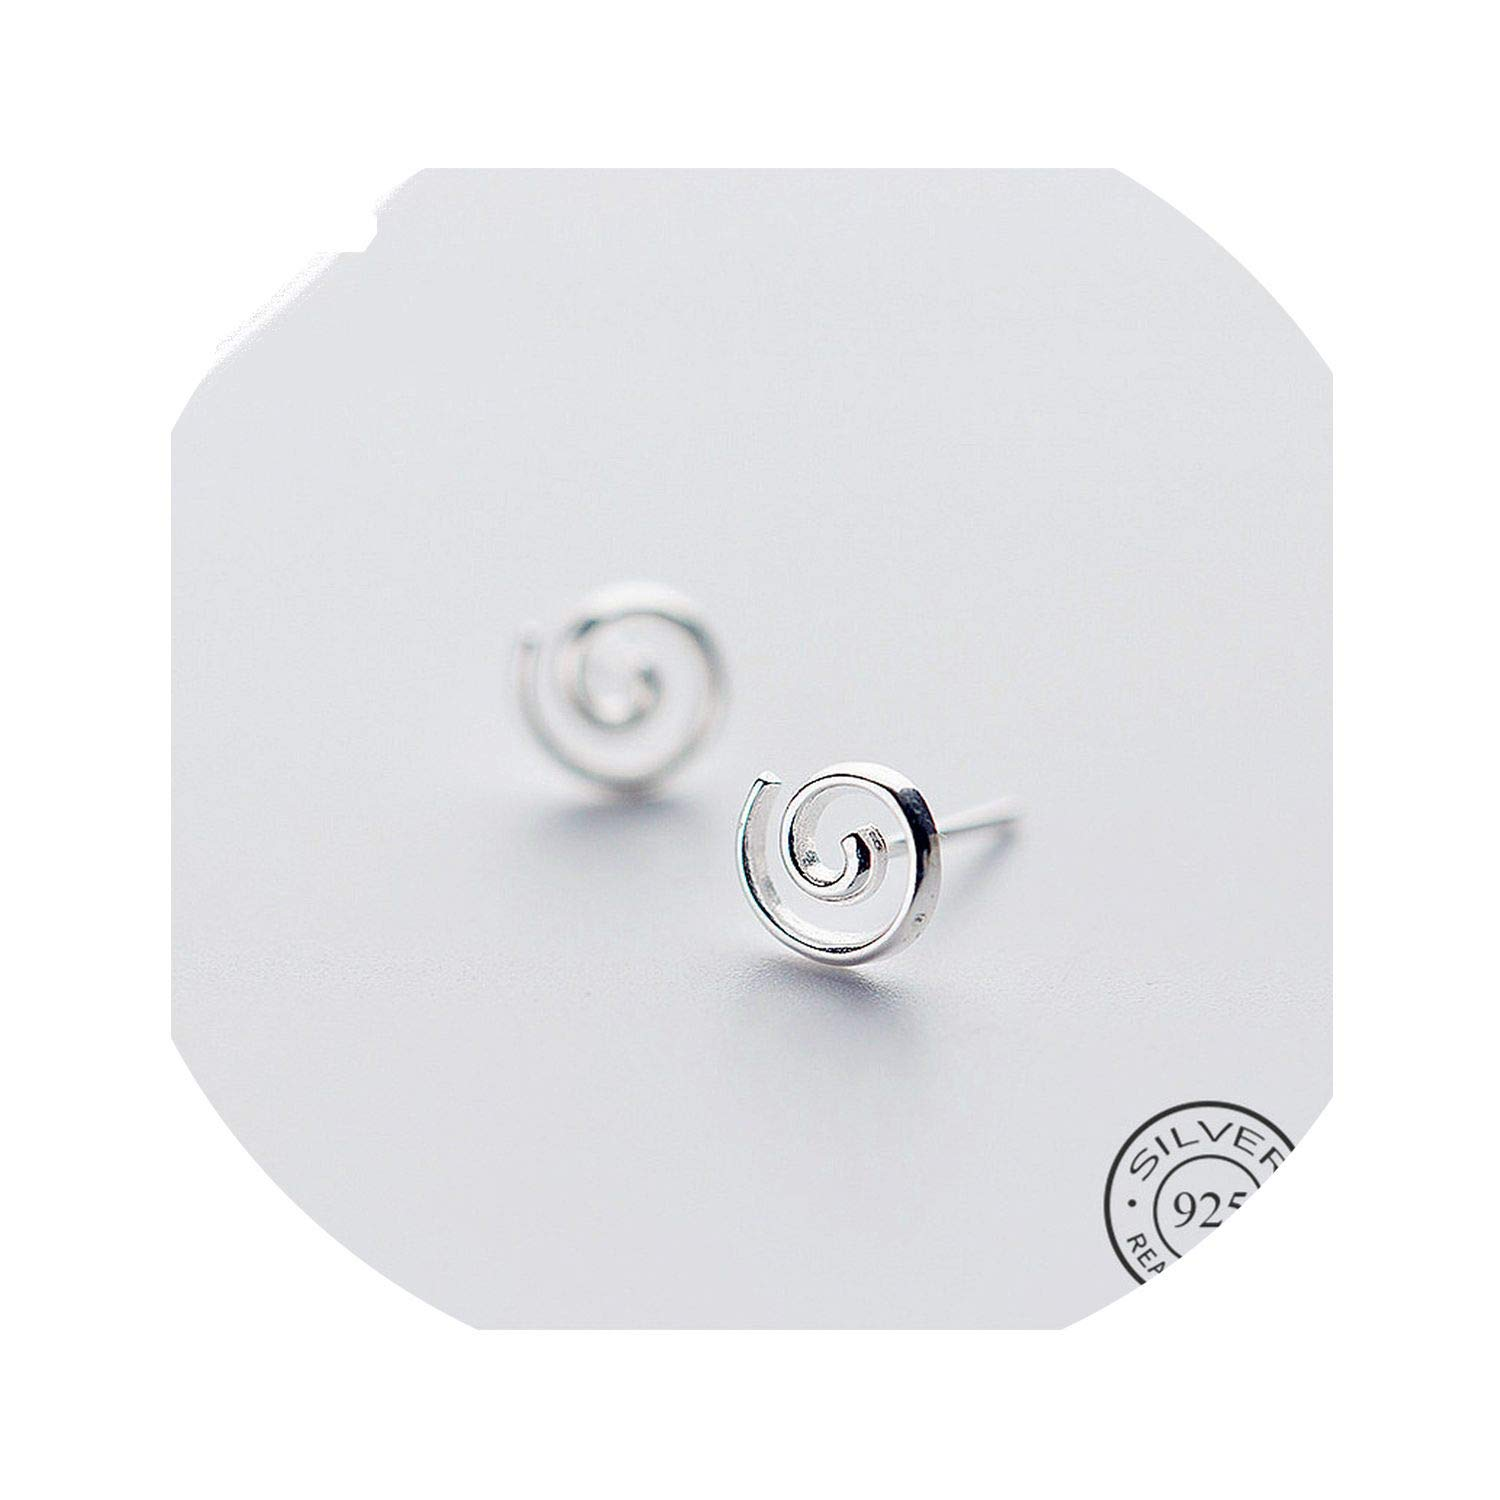 Geometric Spiral Stud Earrings For Women Charm Silver 925 Fashion Jewelry Men Accessories 2019 Gift